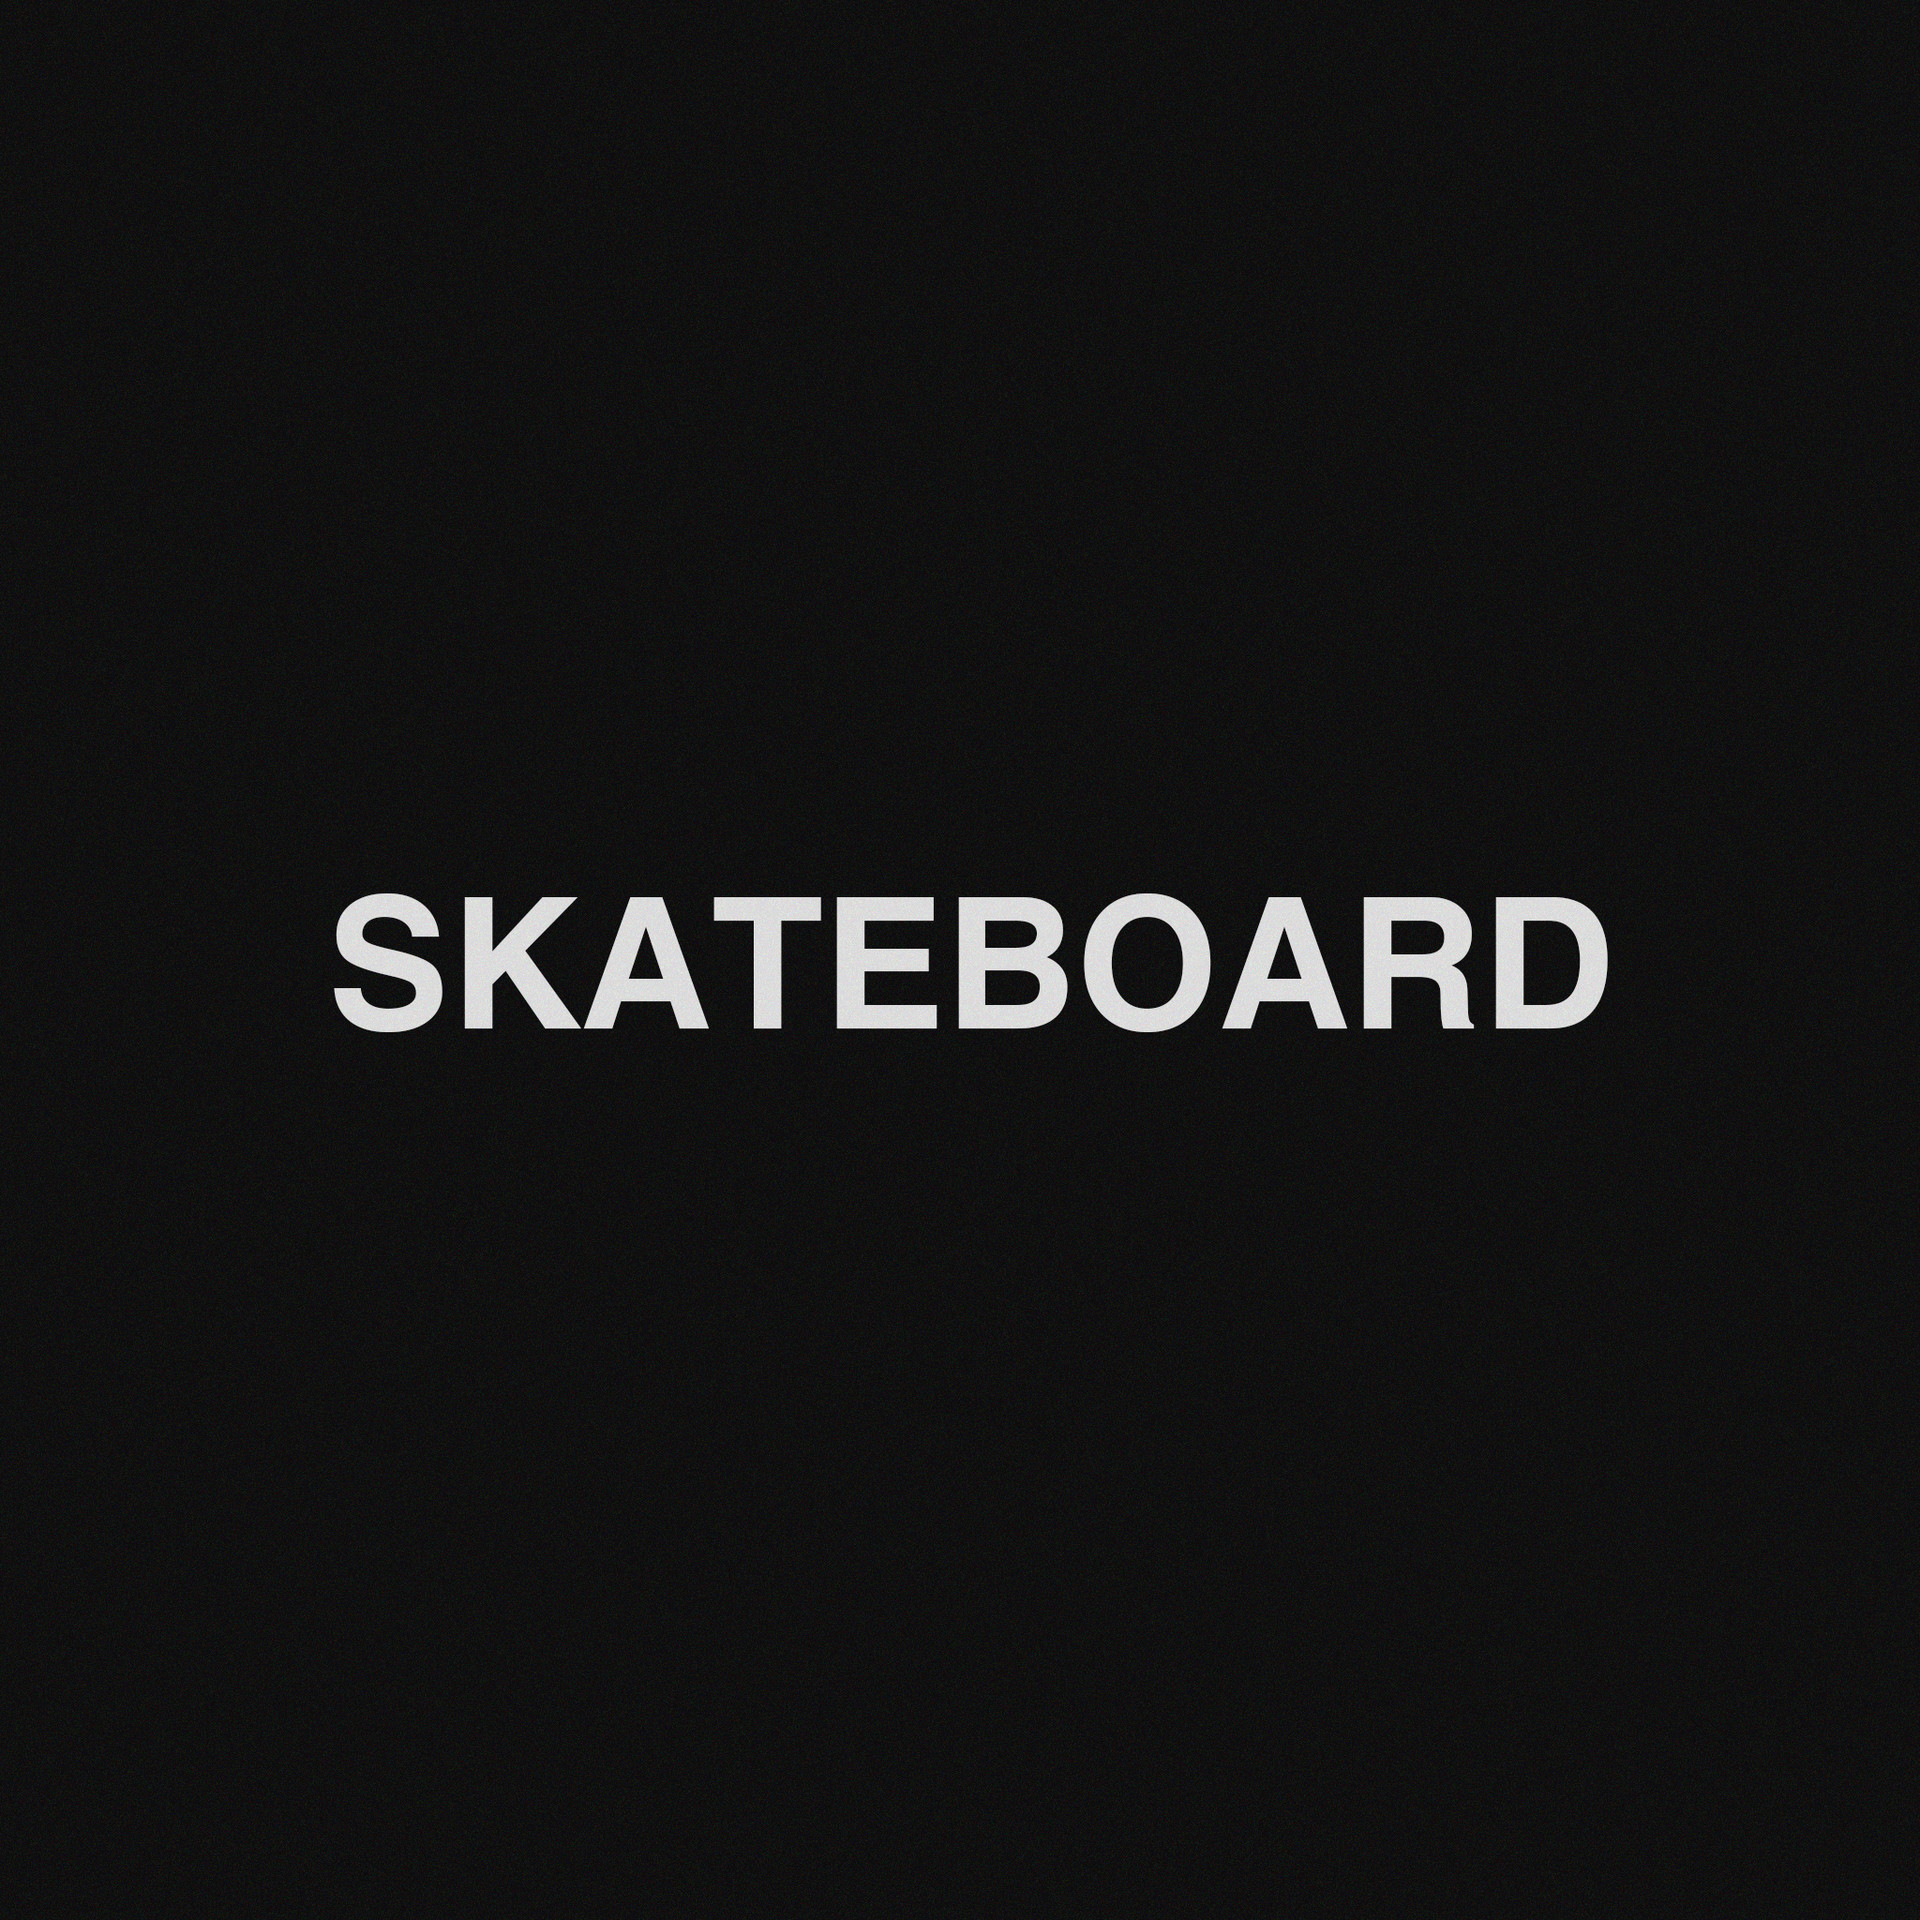 Mark chang skateboard title